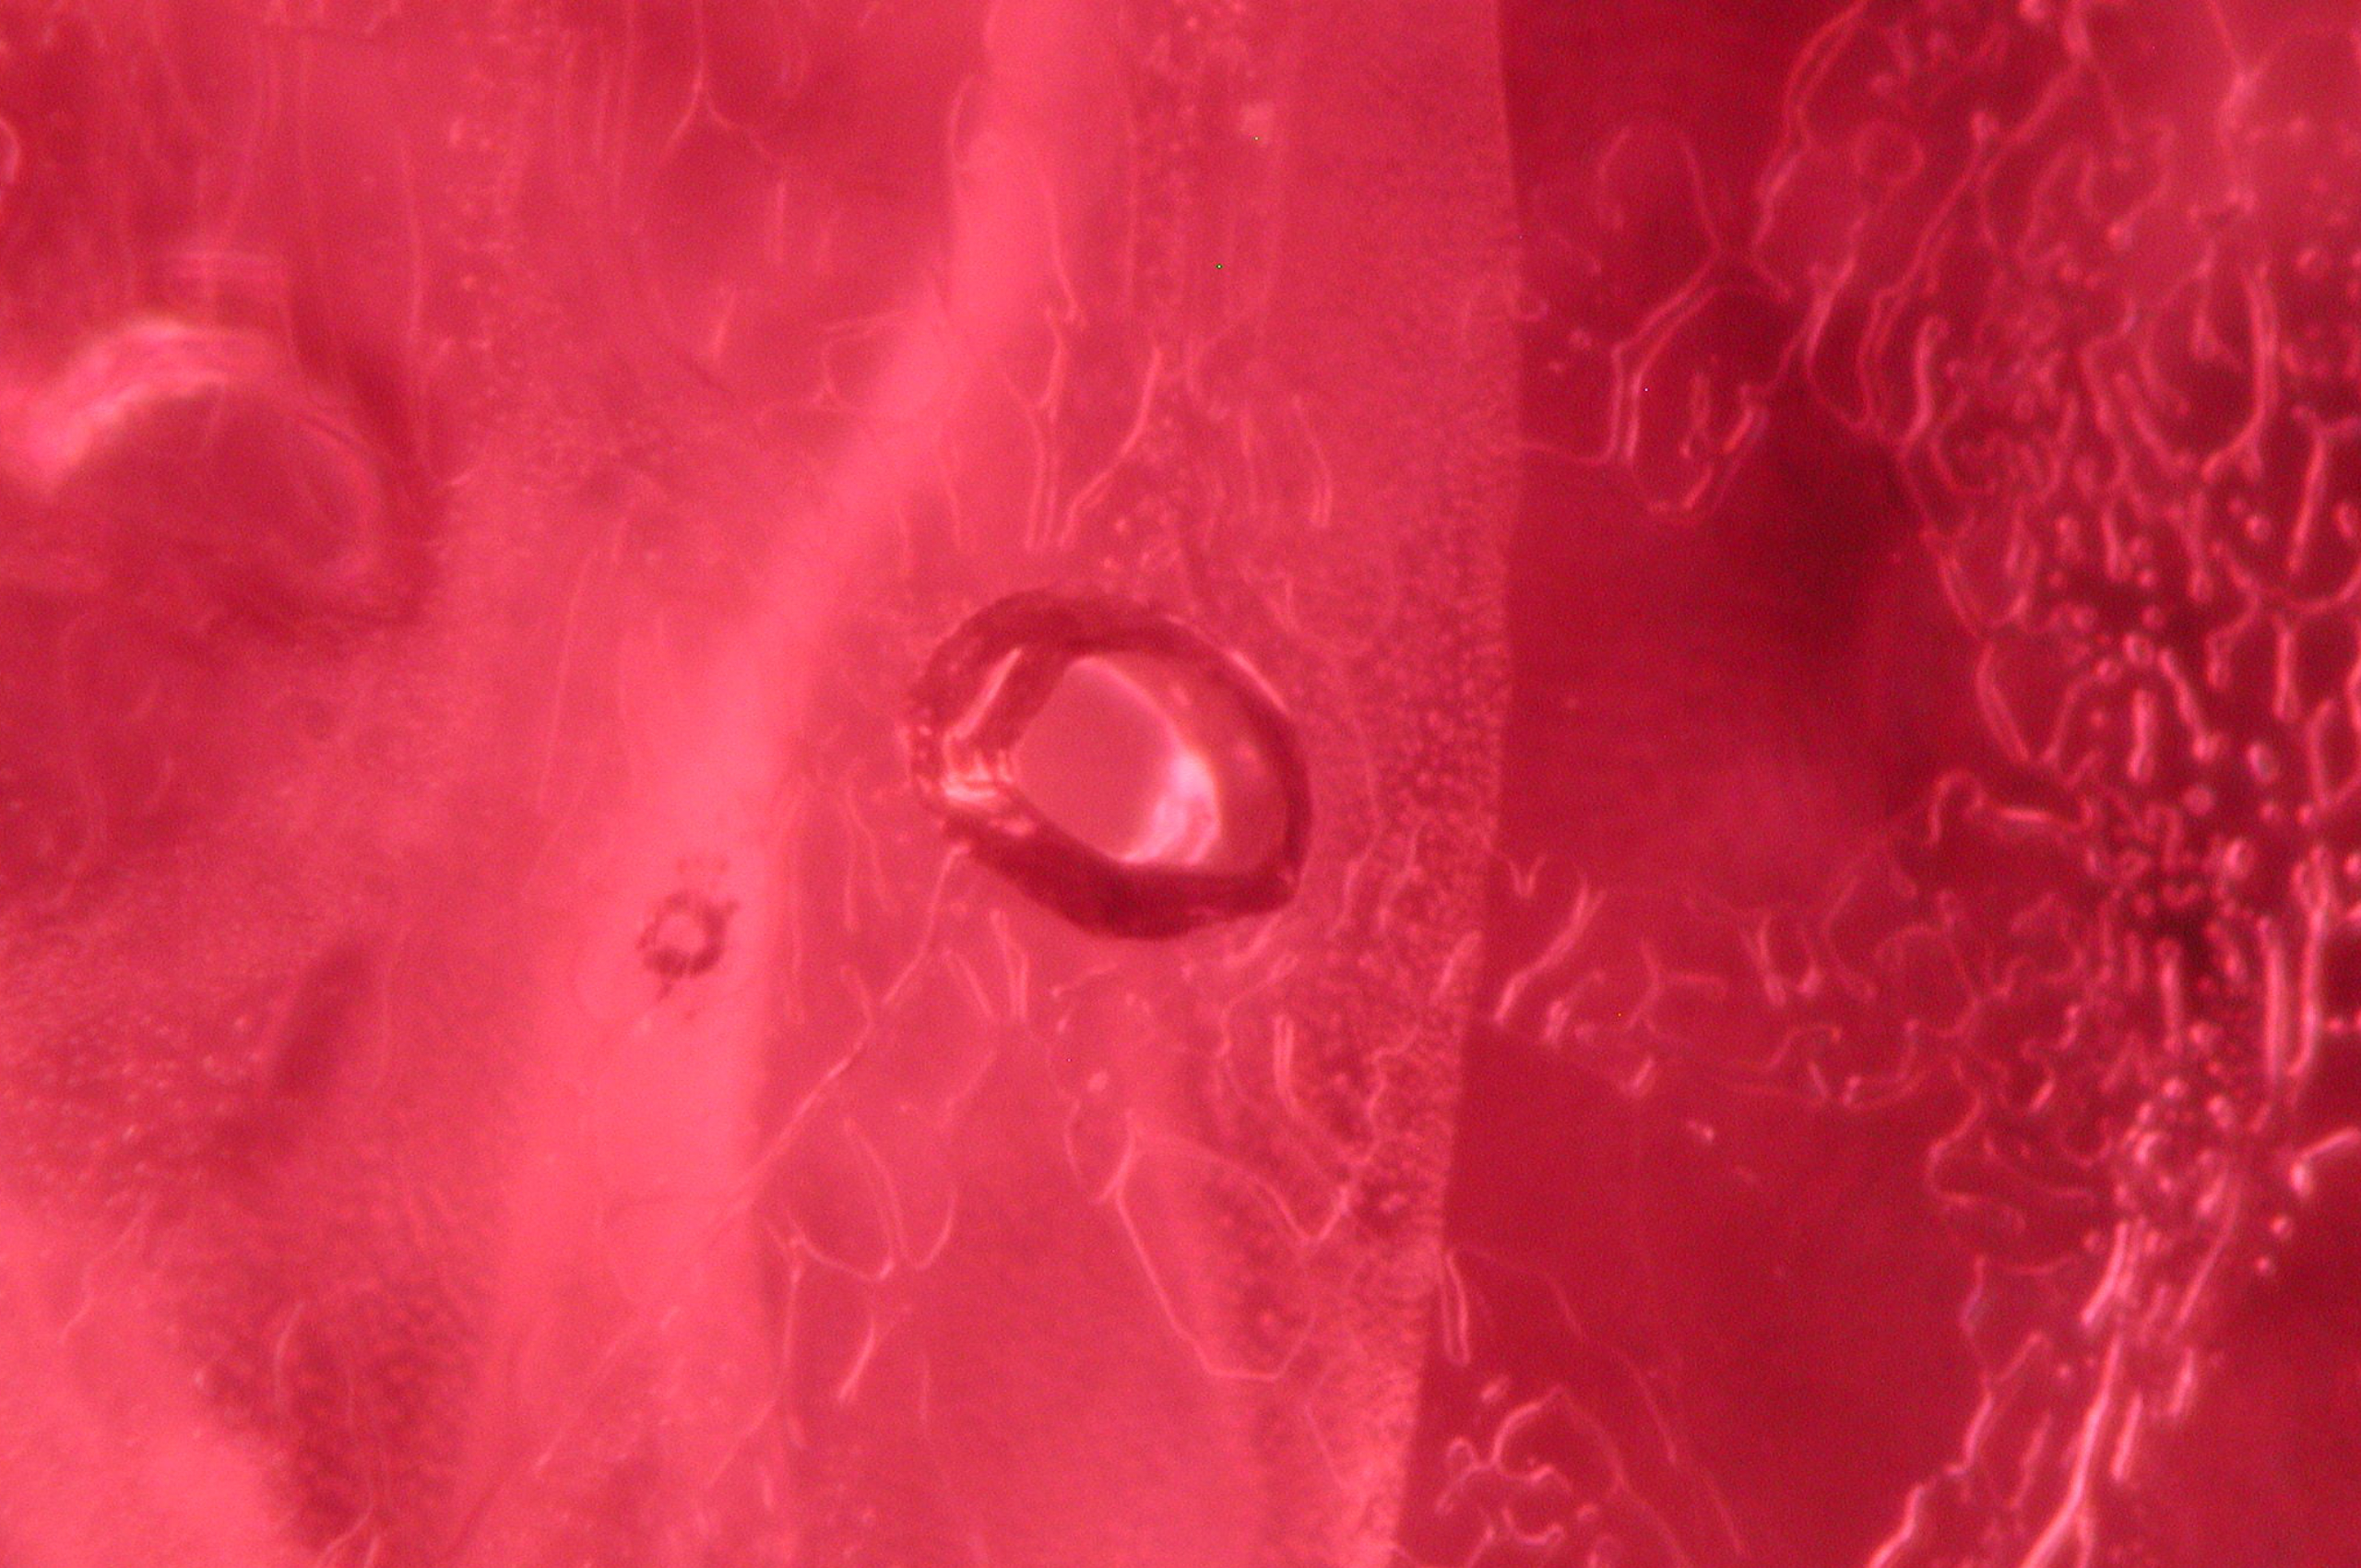 Melted crystal partially heal the halo around it in Ruby from Thailand. Photo by Monica Renna and Salvo Castelli